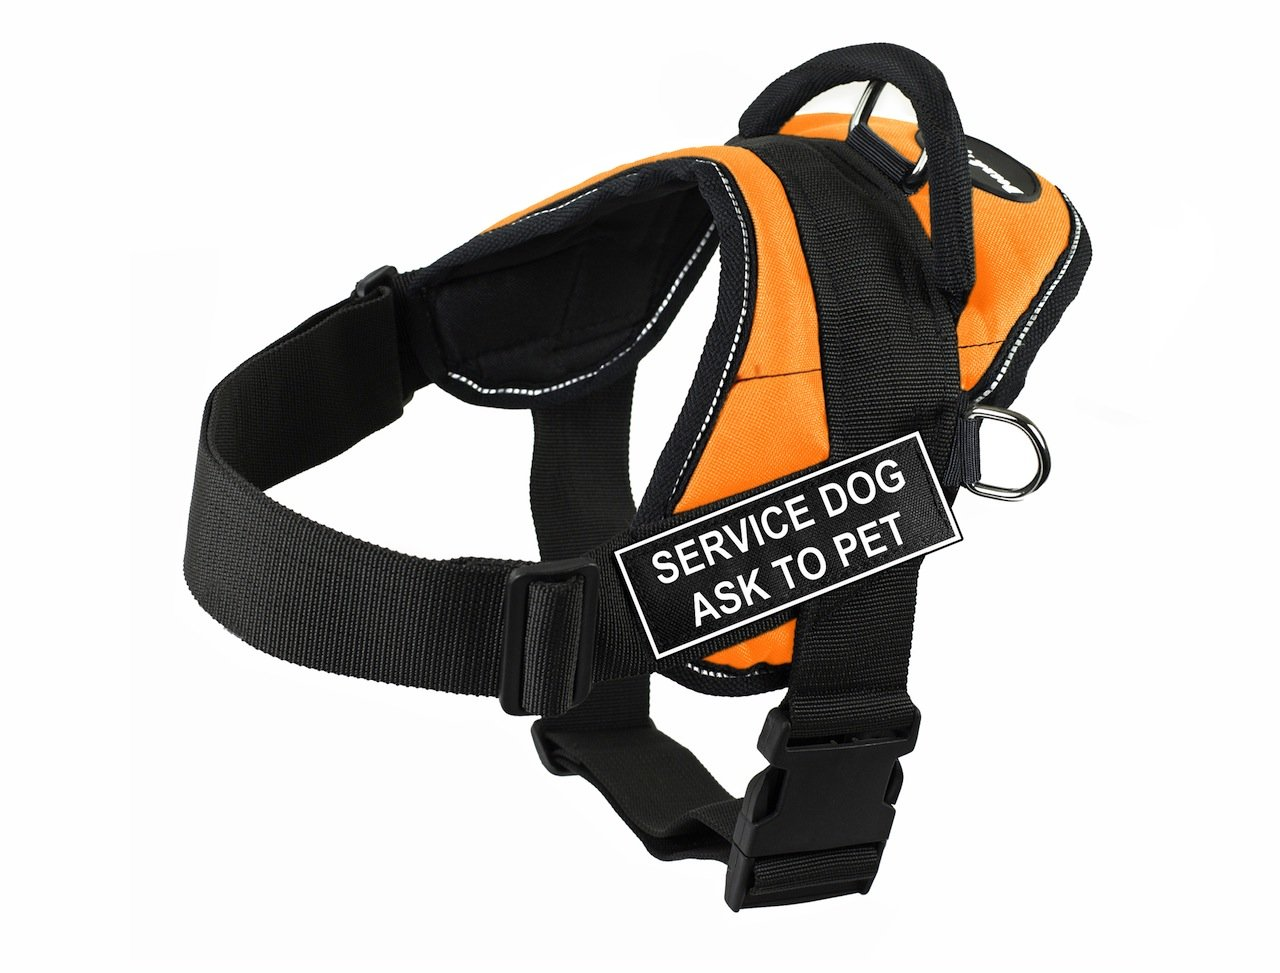 Dean & Tyler DT Fun Service Dog Ask to Pet  Harness with Reflective Trim, XX-Small, orange